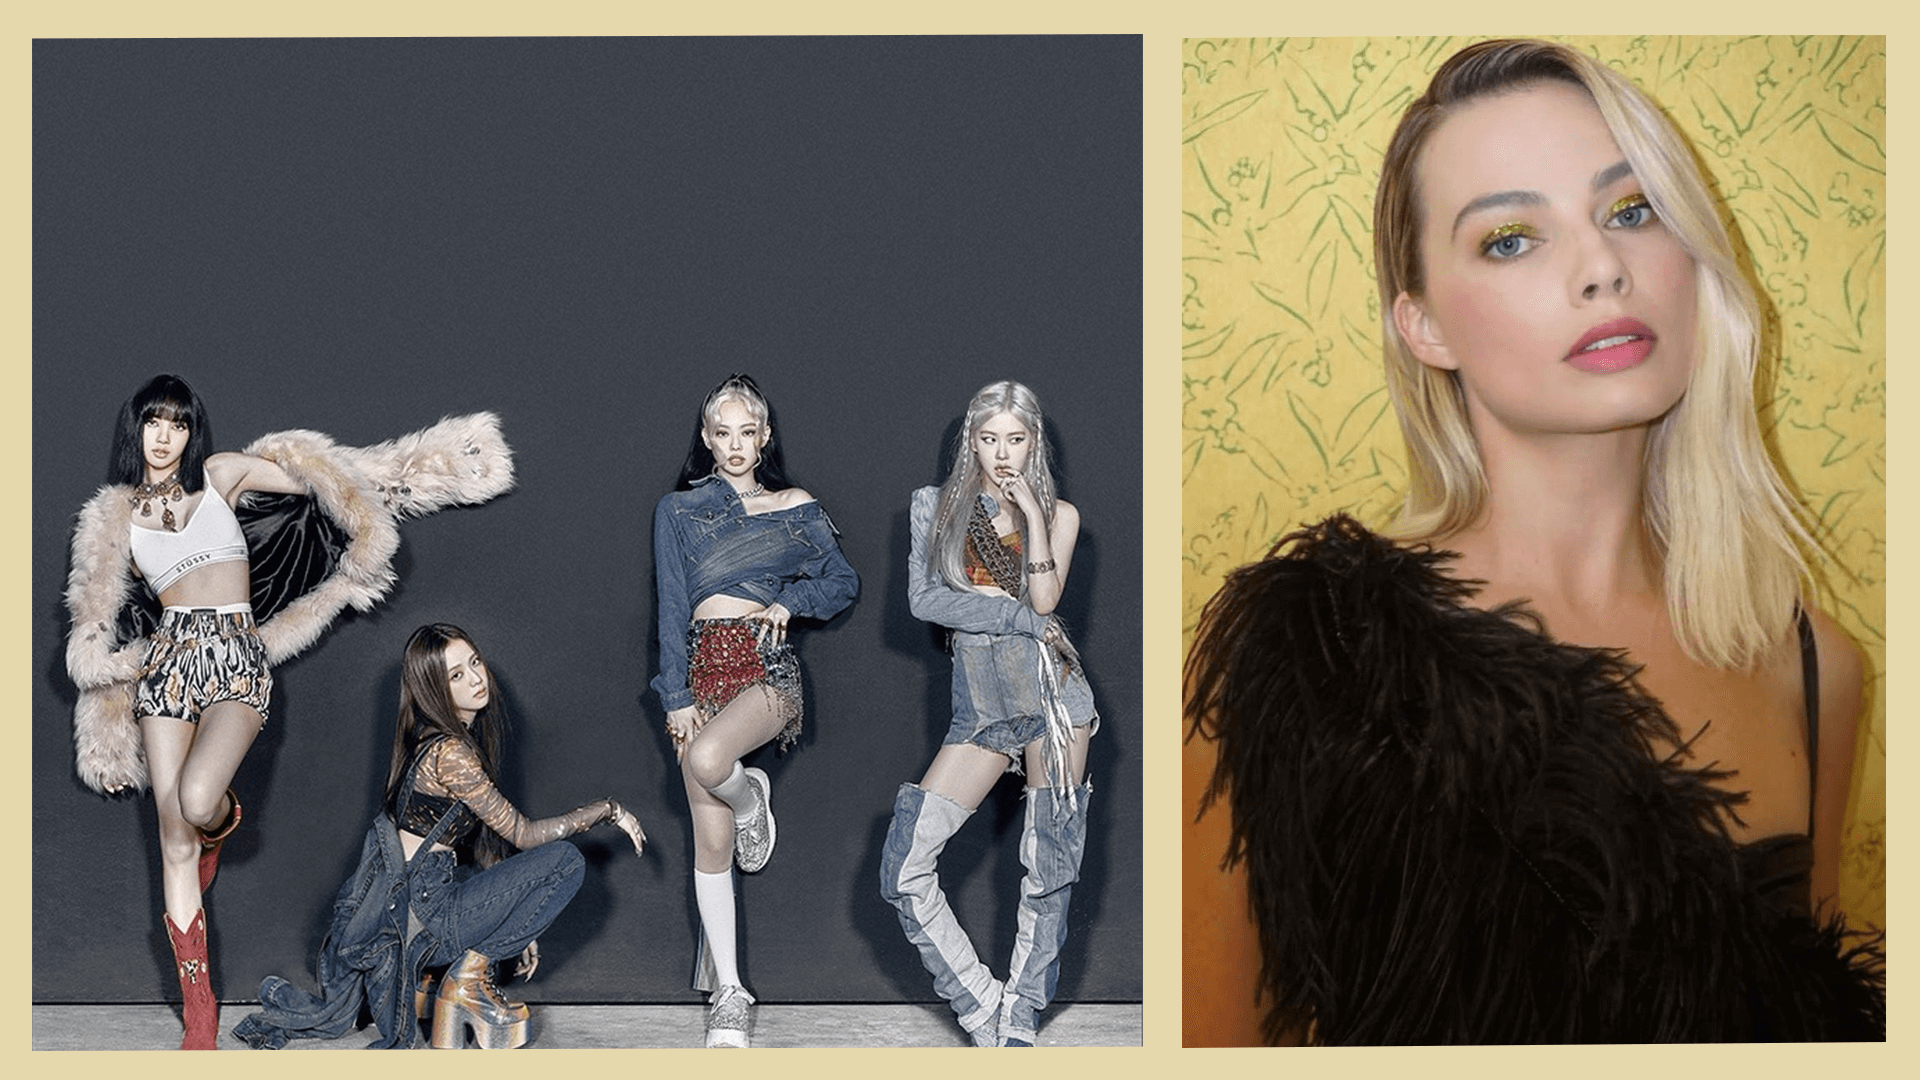 Online News Roundup: Blackpink's 'How You Like That', Margot Robbie, and Huawei P40 Pro+